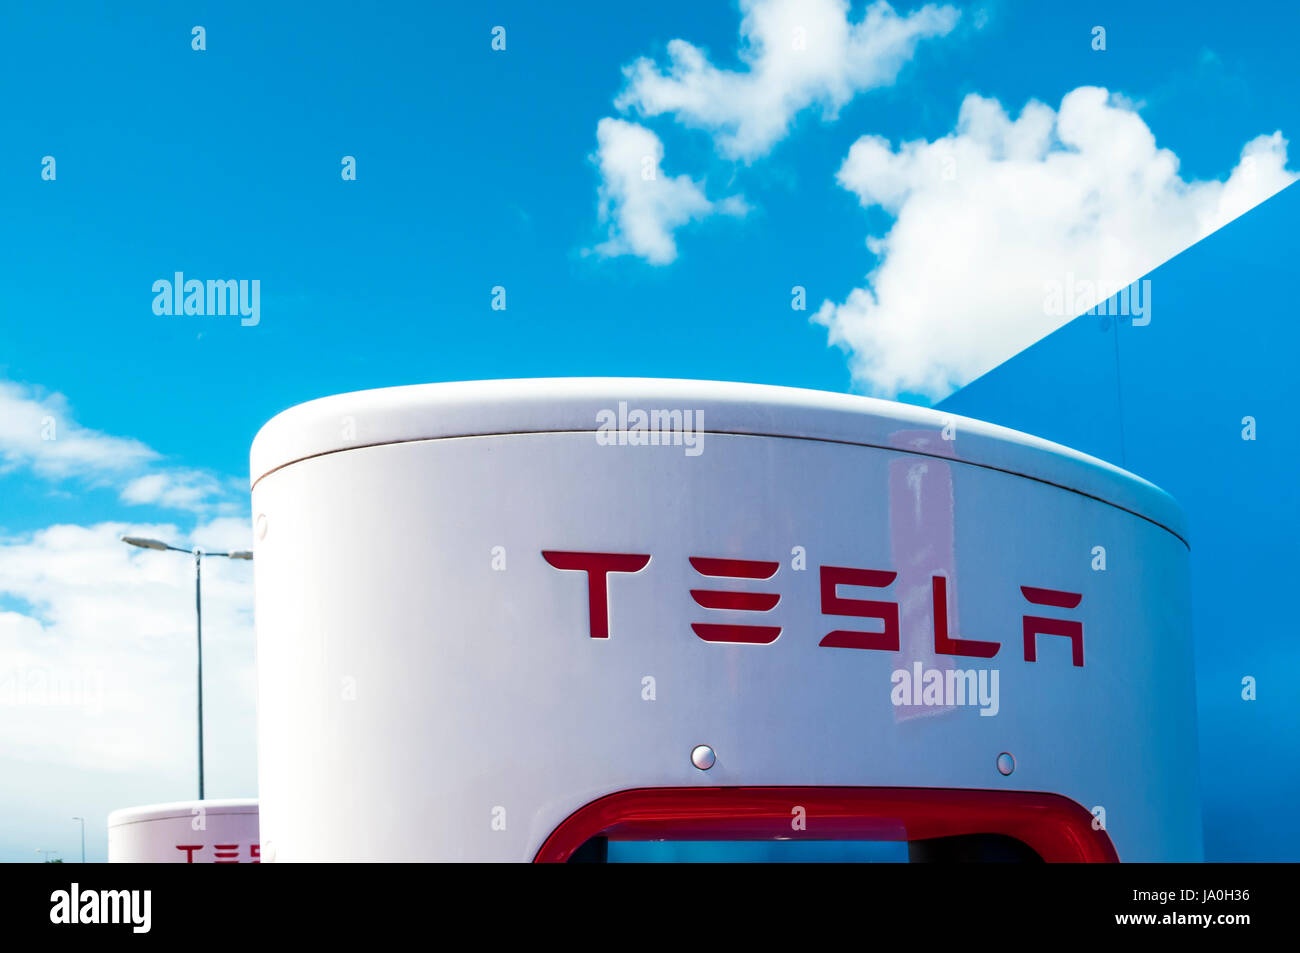 Electric car re-charging point for Tesla electric cars showing the Tesla name and logo - Stock Image